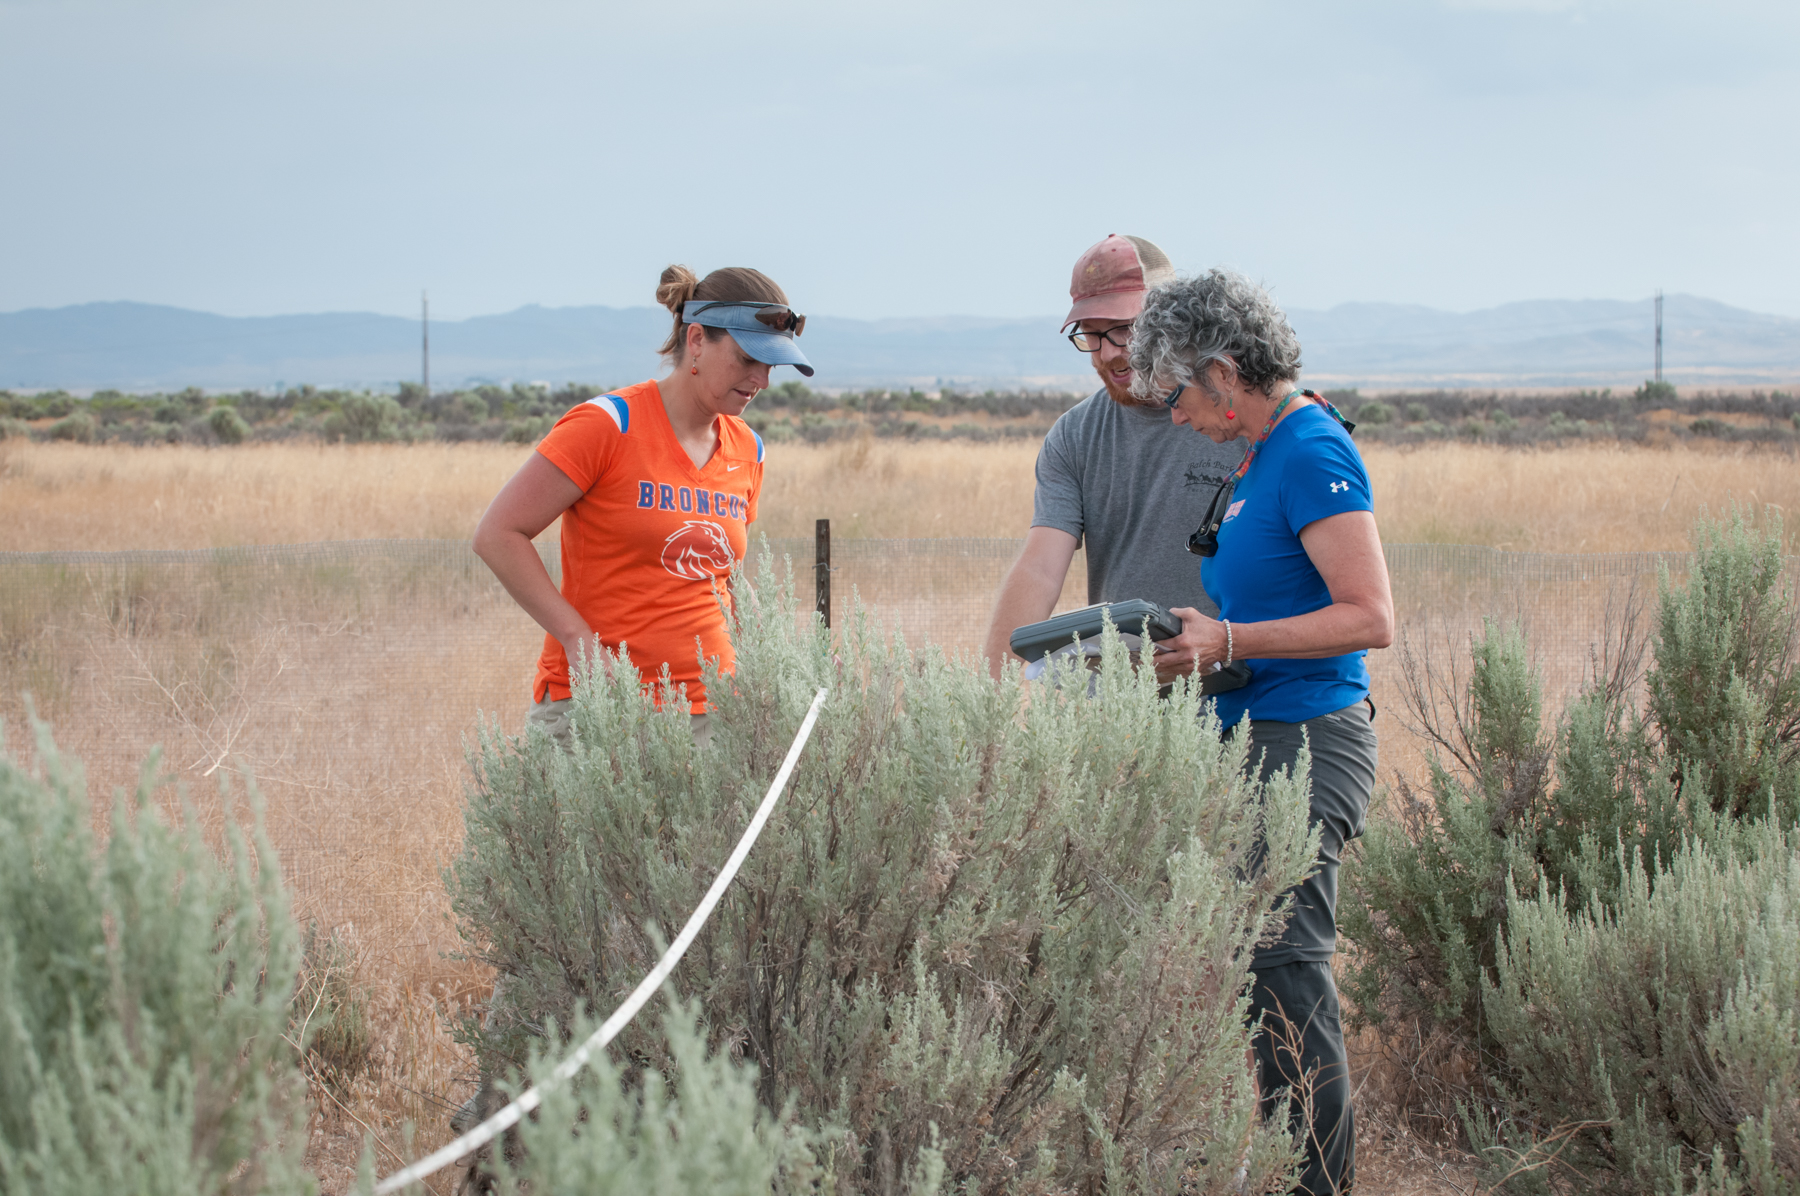 Dr. Jennifer Forbey with other researchers doing field work in a grassy area beside plants resembling sagebrush.